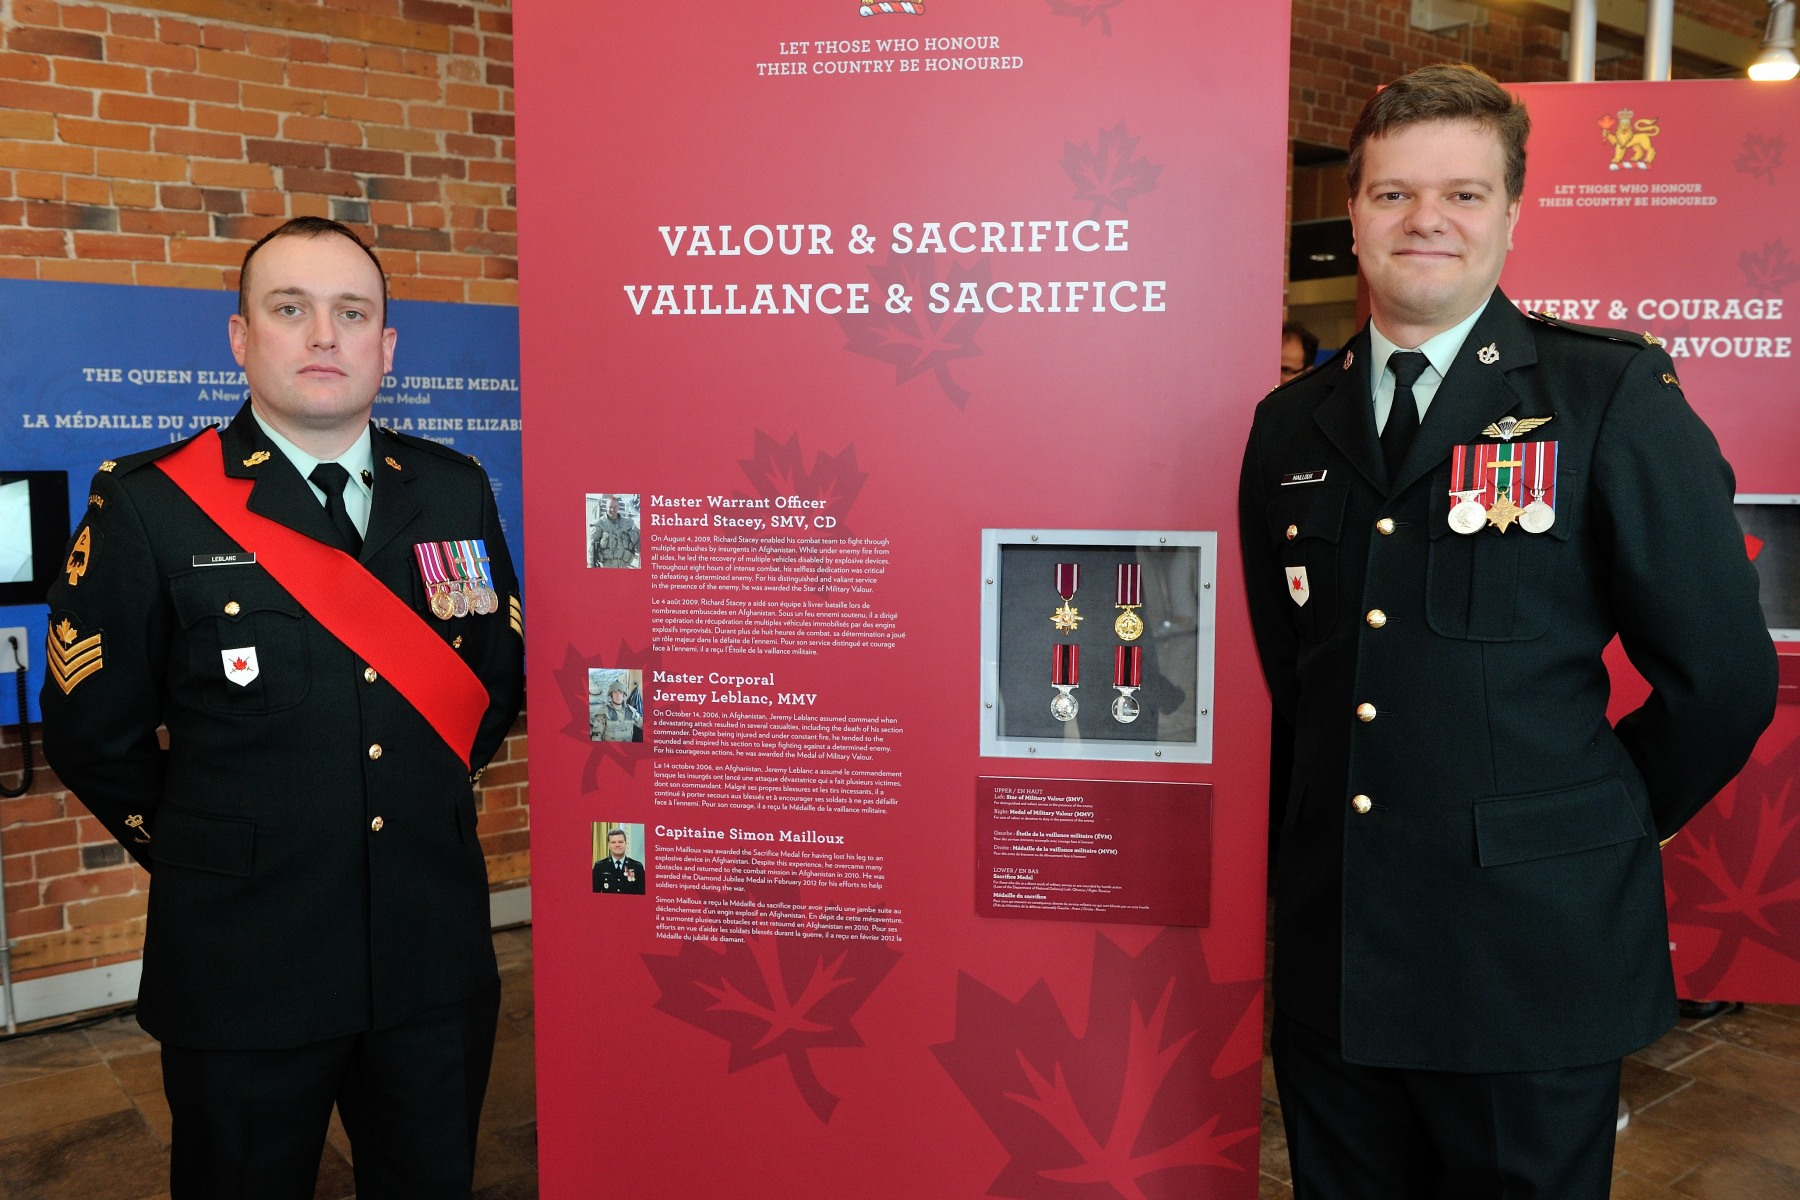 Also featured in the exhibit are Sergeant Jeremy Leblanc, M.M.V. (left) and Captain Simon Mailloux (right). On October 14, 2006, in Afghanistan, Sergeant Leblanc assumed command when a devastating attack  resulted in several casualties, including the death of his section commander. Despite being injured and under constant fire, he tended to the wounded and inspired his section to keep fighting against a determined enemy. For his courageous act of valour, Sergent Leblanc was awarded the Medal of Military Valour. Captain Mailloux lost his leg to an explosive device in Afghanistan and was awarded the Sacrifice Medal. Despite this experience, he overcame many obstacles and returned to the combat mission in Afghanistan in 2010. He was awarded the Diamond Jubilee Medal in February 2012 for his leadership with soldiers injured during the war.